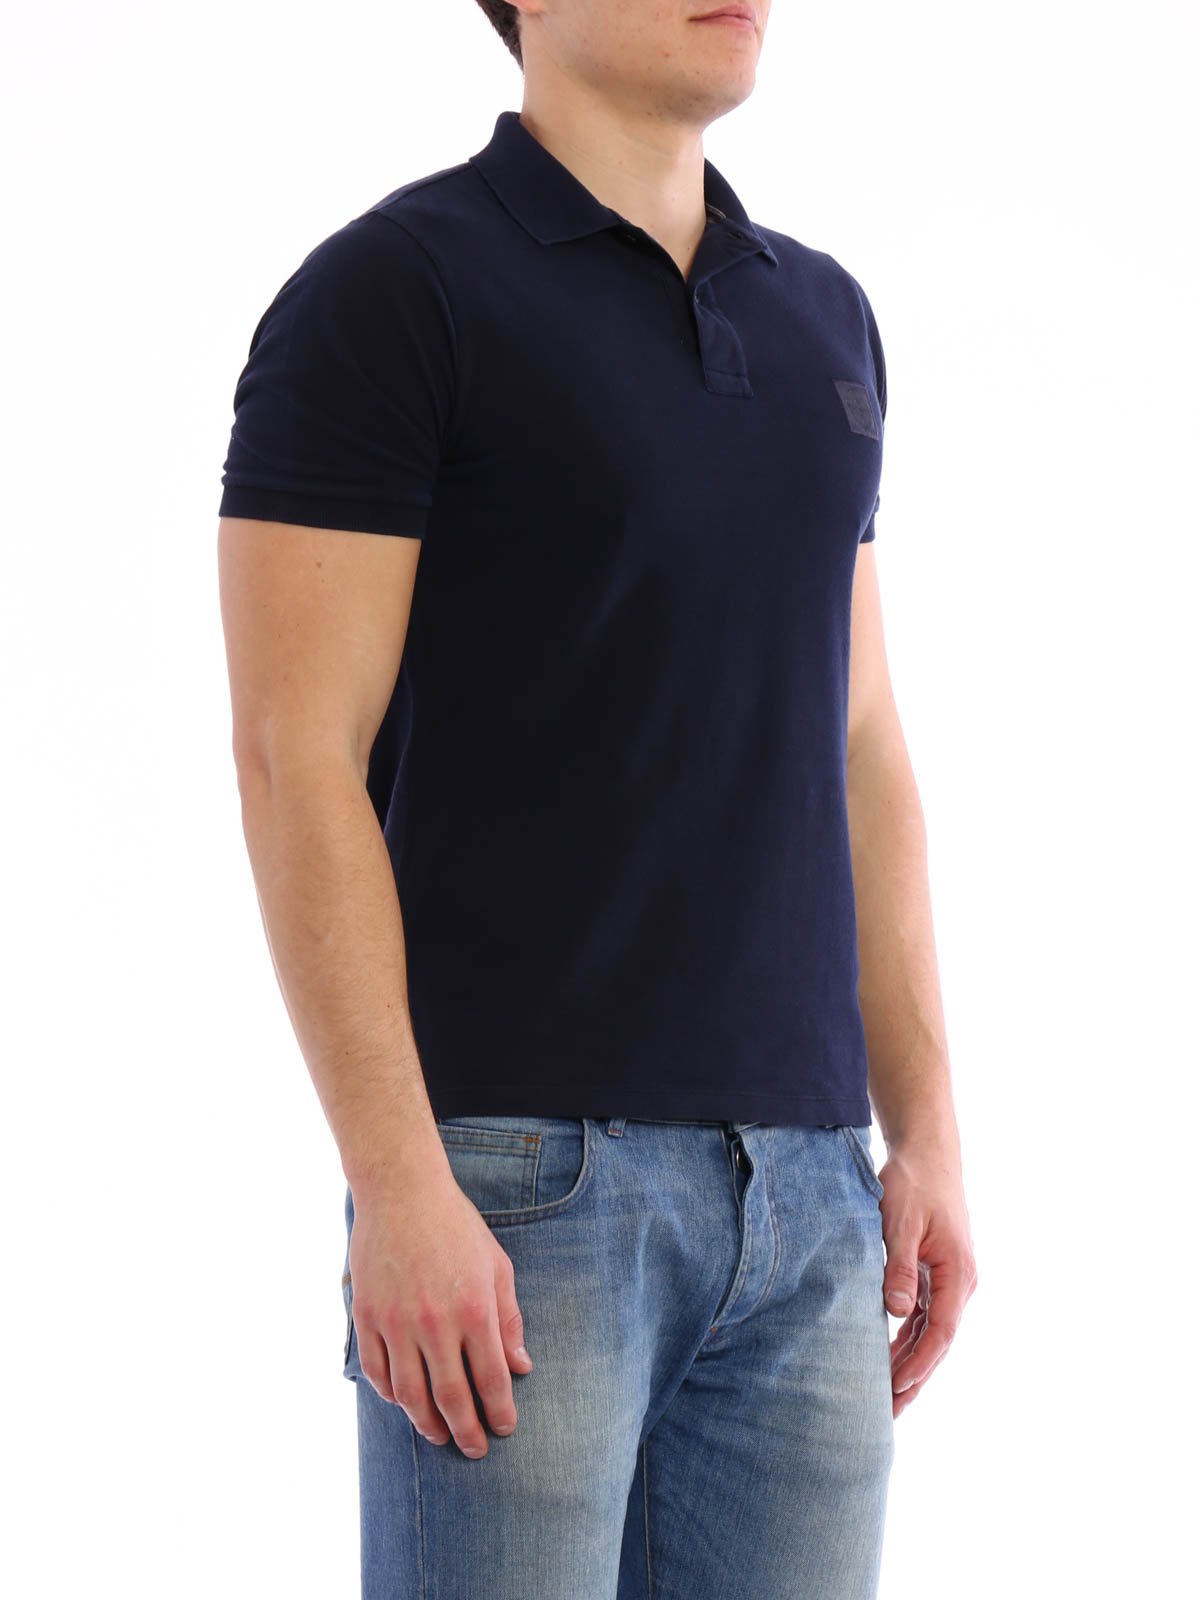 solid colour pique polo by stone island polo shirts shop online at 641522s67 v0020. Black Bedroom Furniture Sets. Home Design Ideas